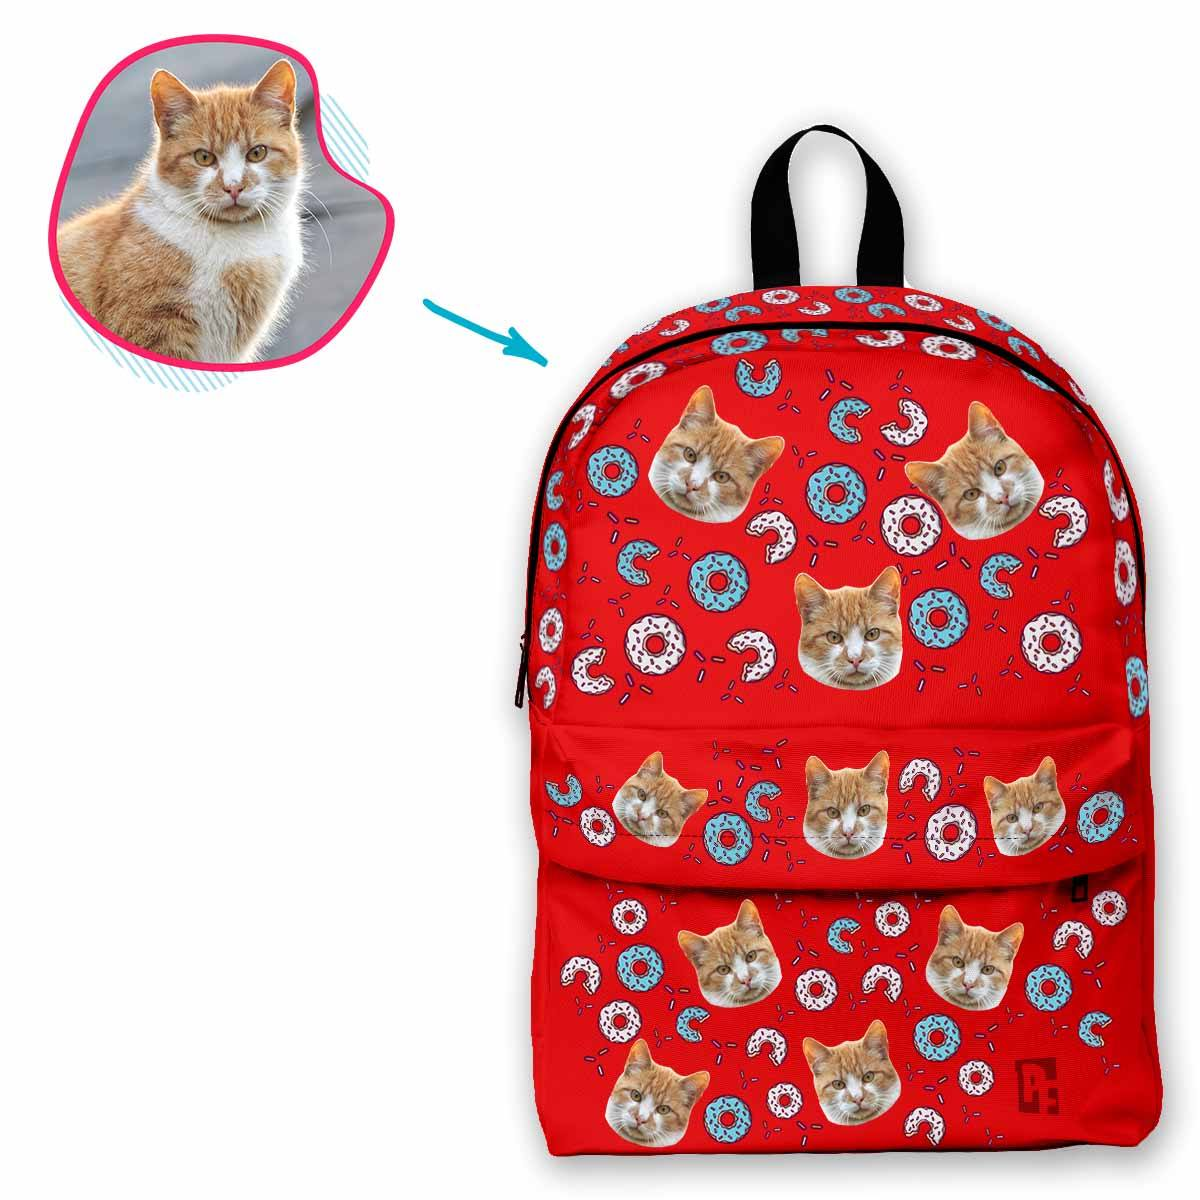 red Donuts classic backpack personalized with photo of face printed on it